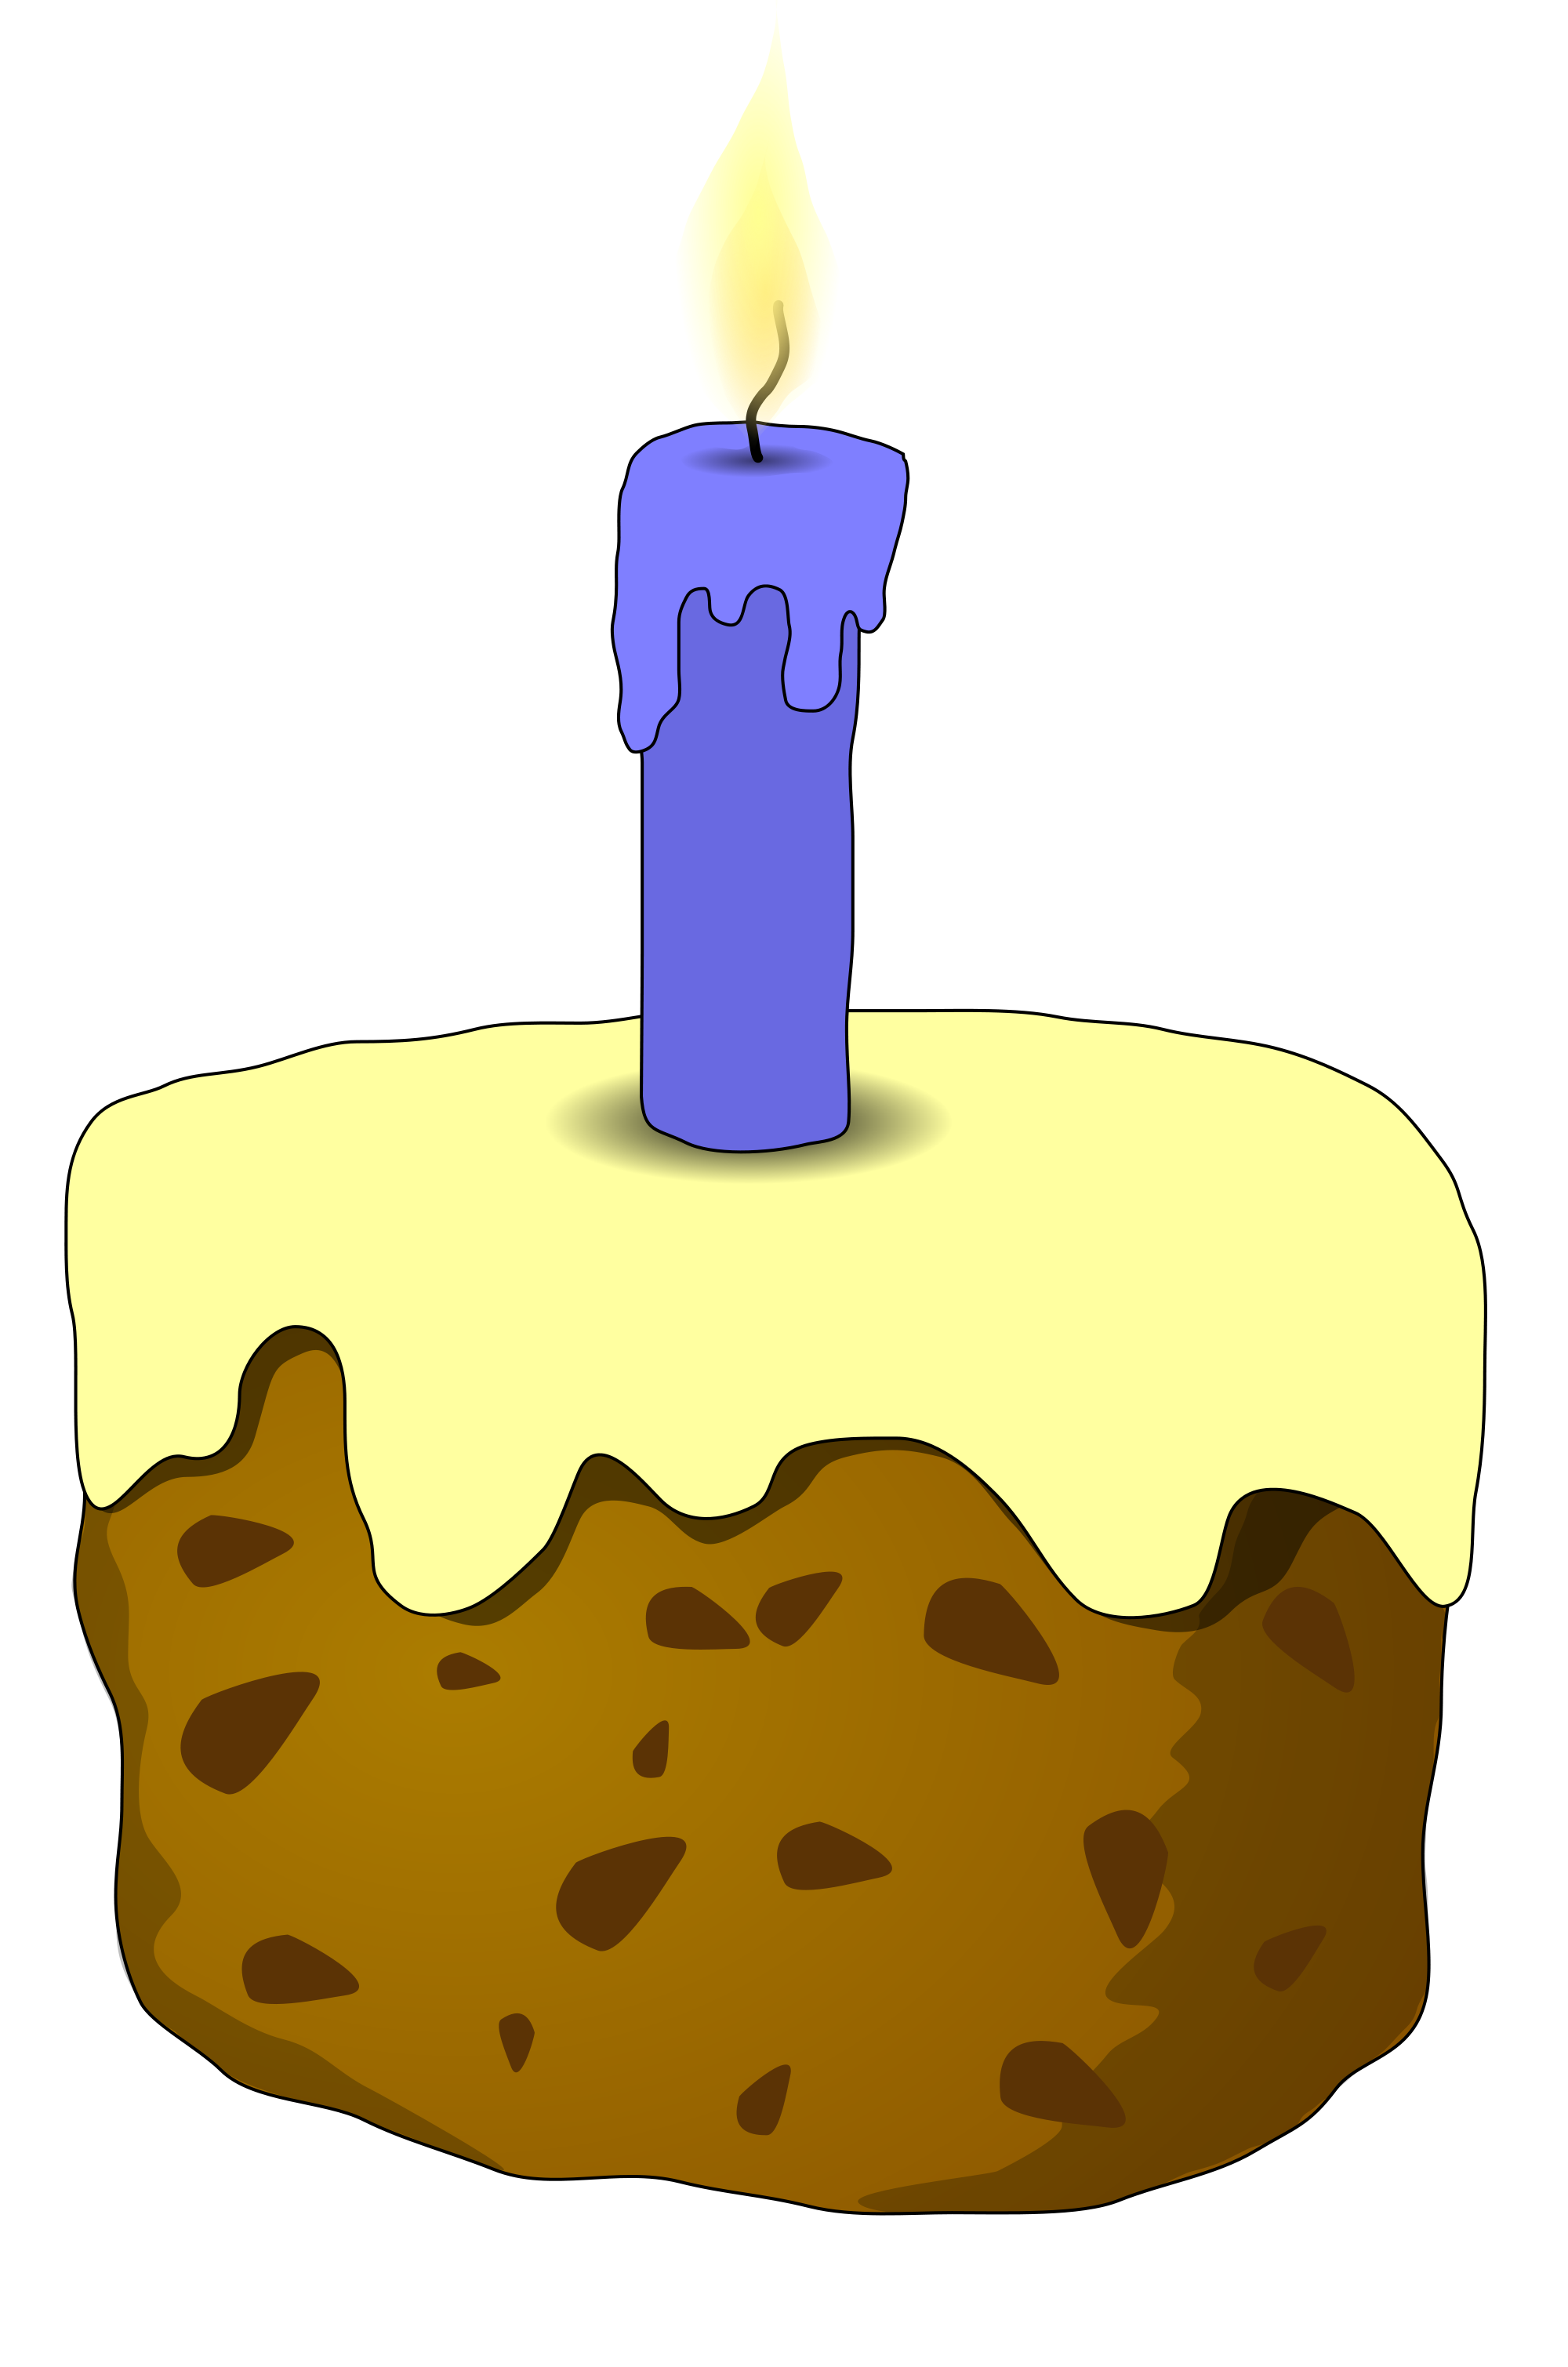 File And Candle Svg Wikimedia Commons Open January Clipart Cake Image Free Birthday Clip